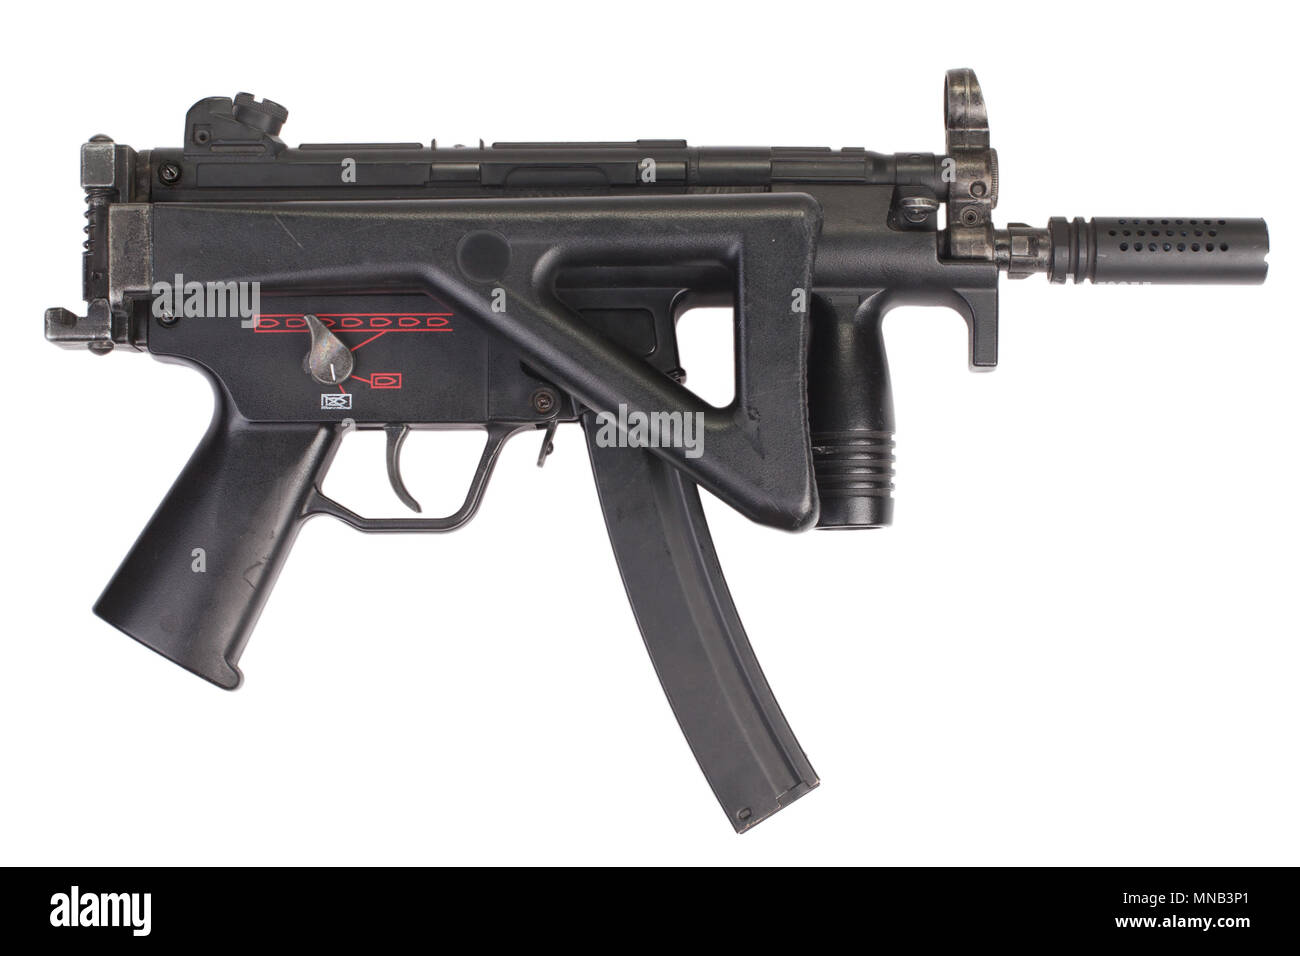 Mp5 High Resolution Stock Photography And Images Alamy